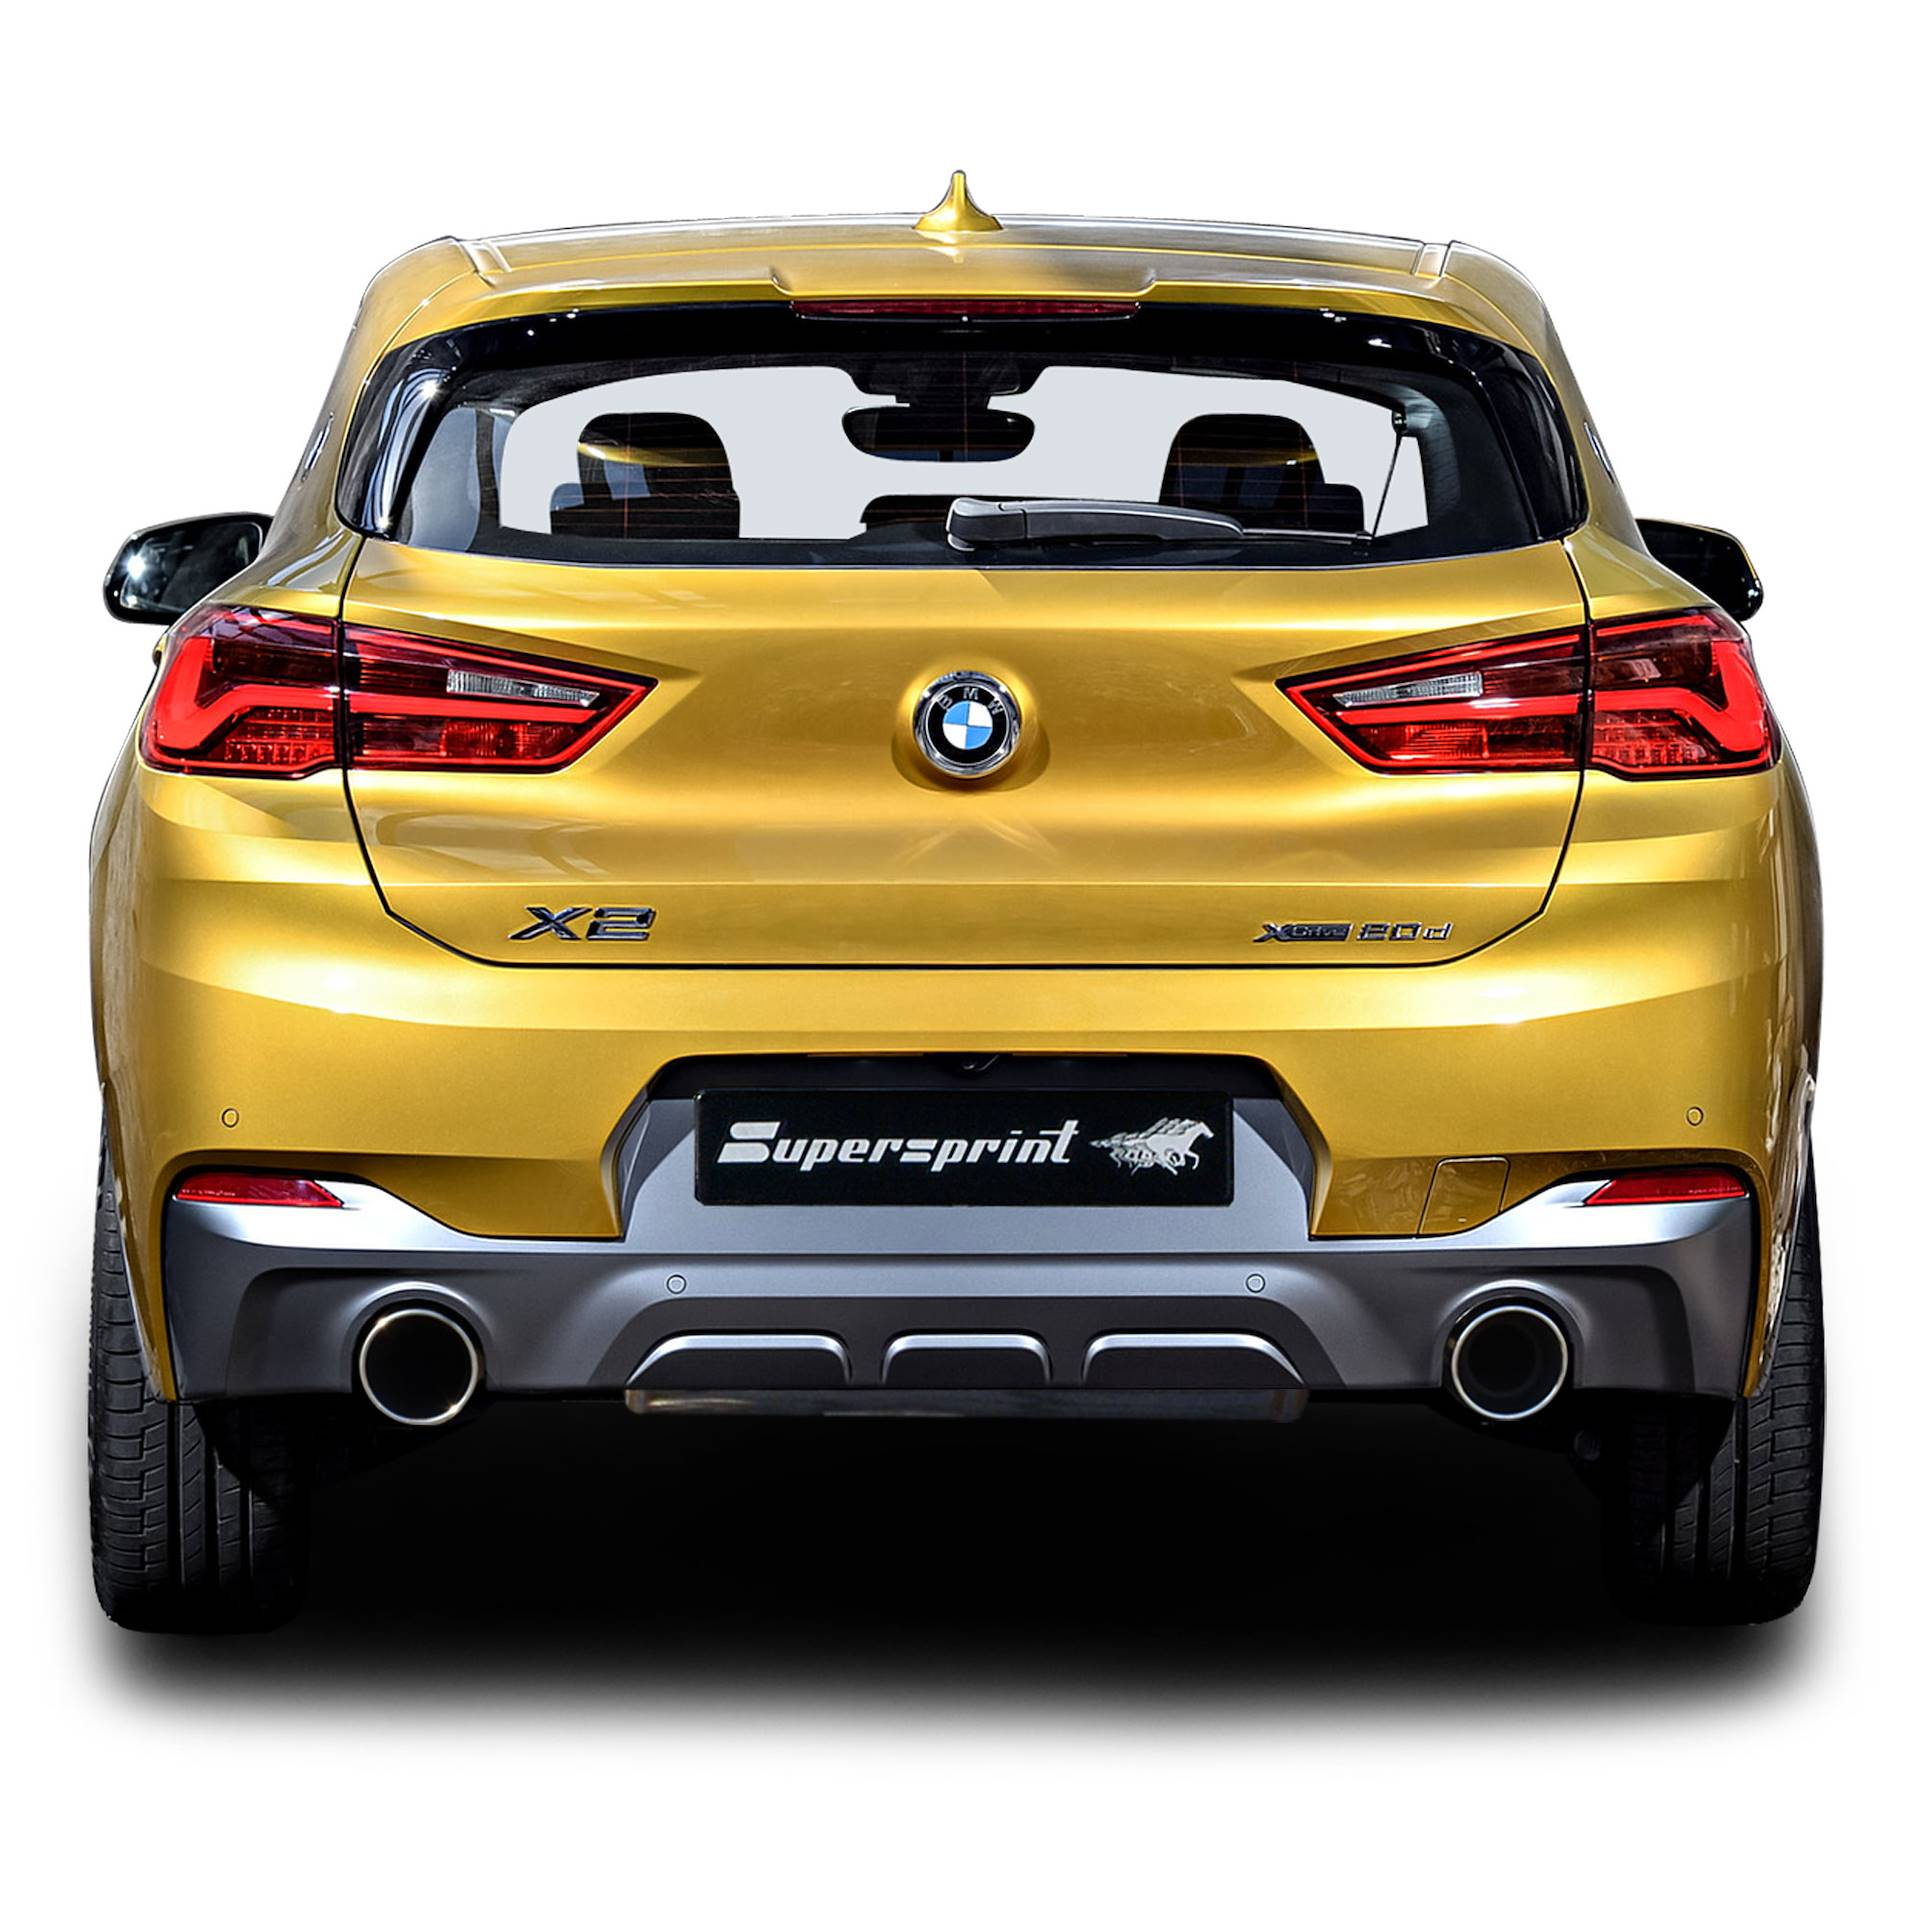 Bmw X2 M Sport 2018 3d Model: New Sport Exhaust For Polo 6R 1.8 TSI 2015 192 Cv, 2015